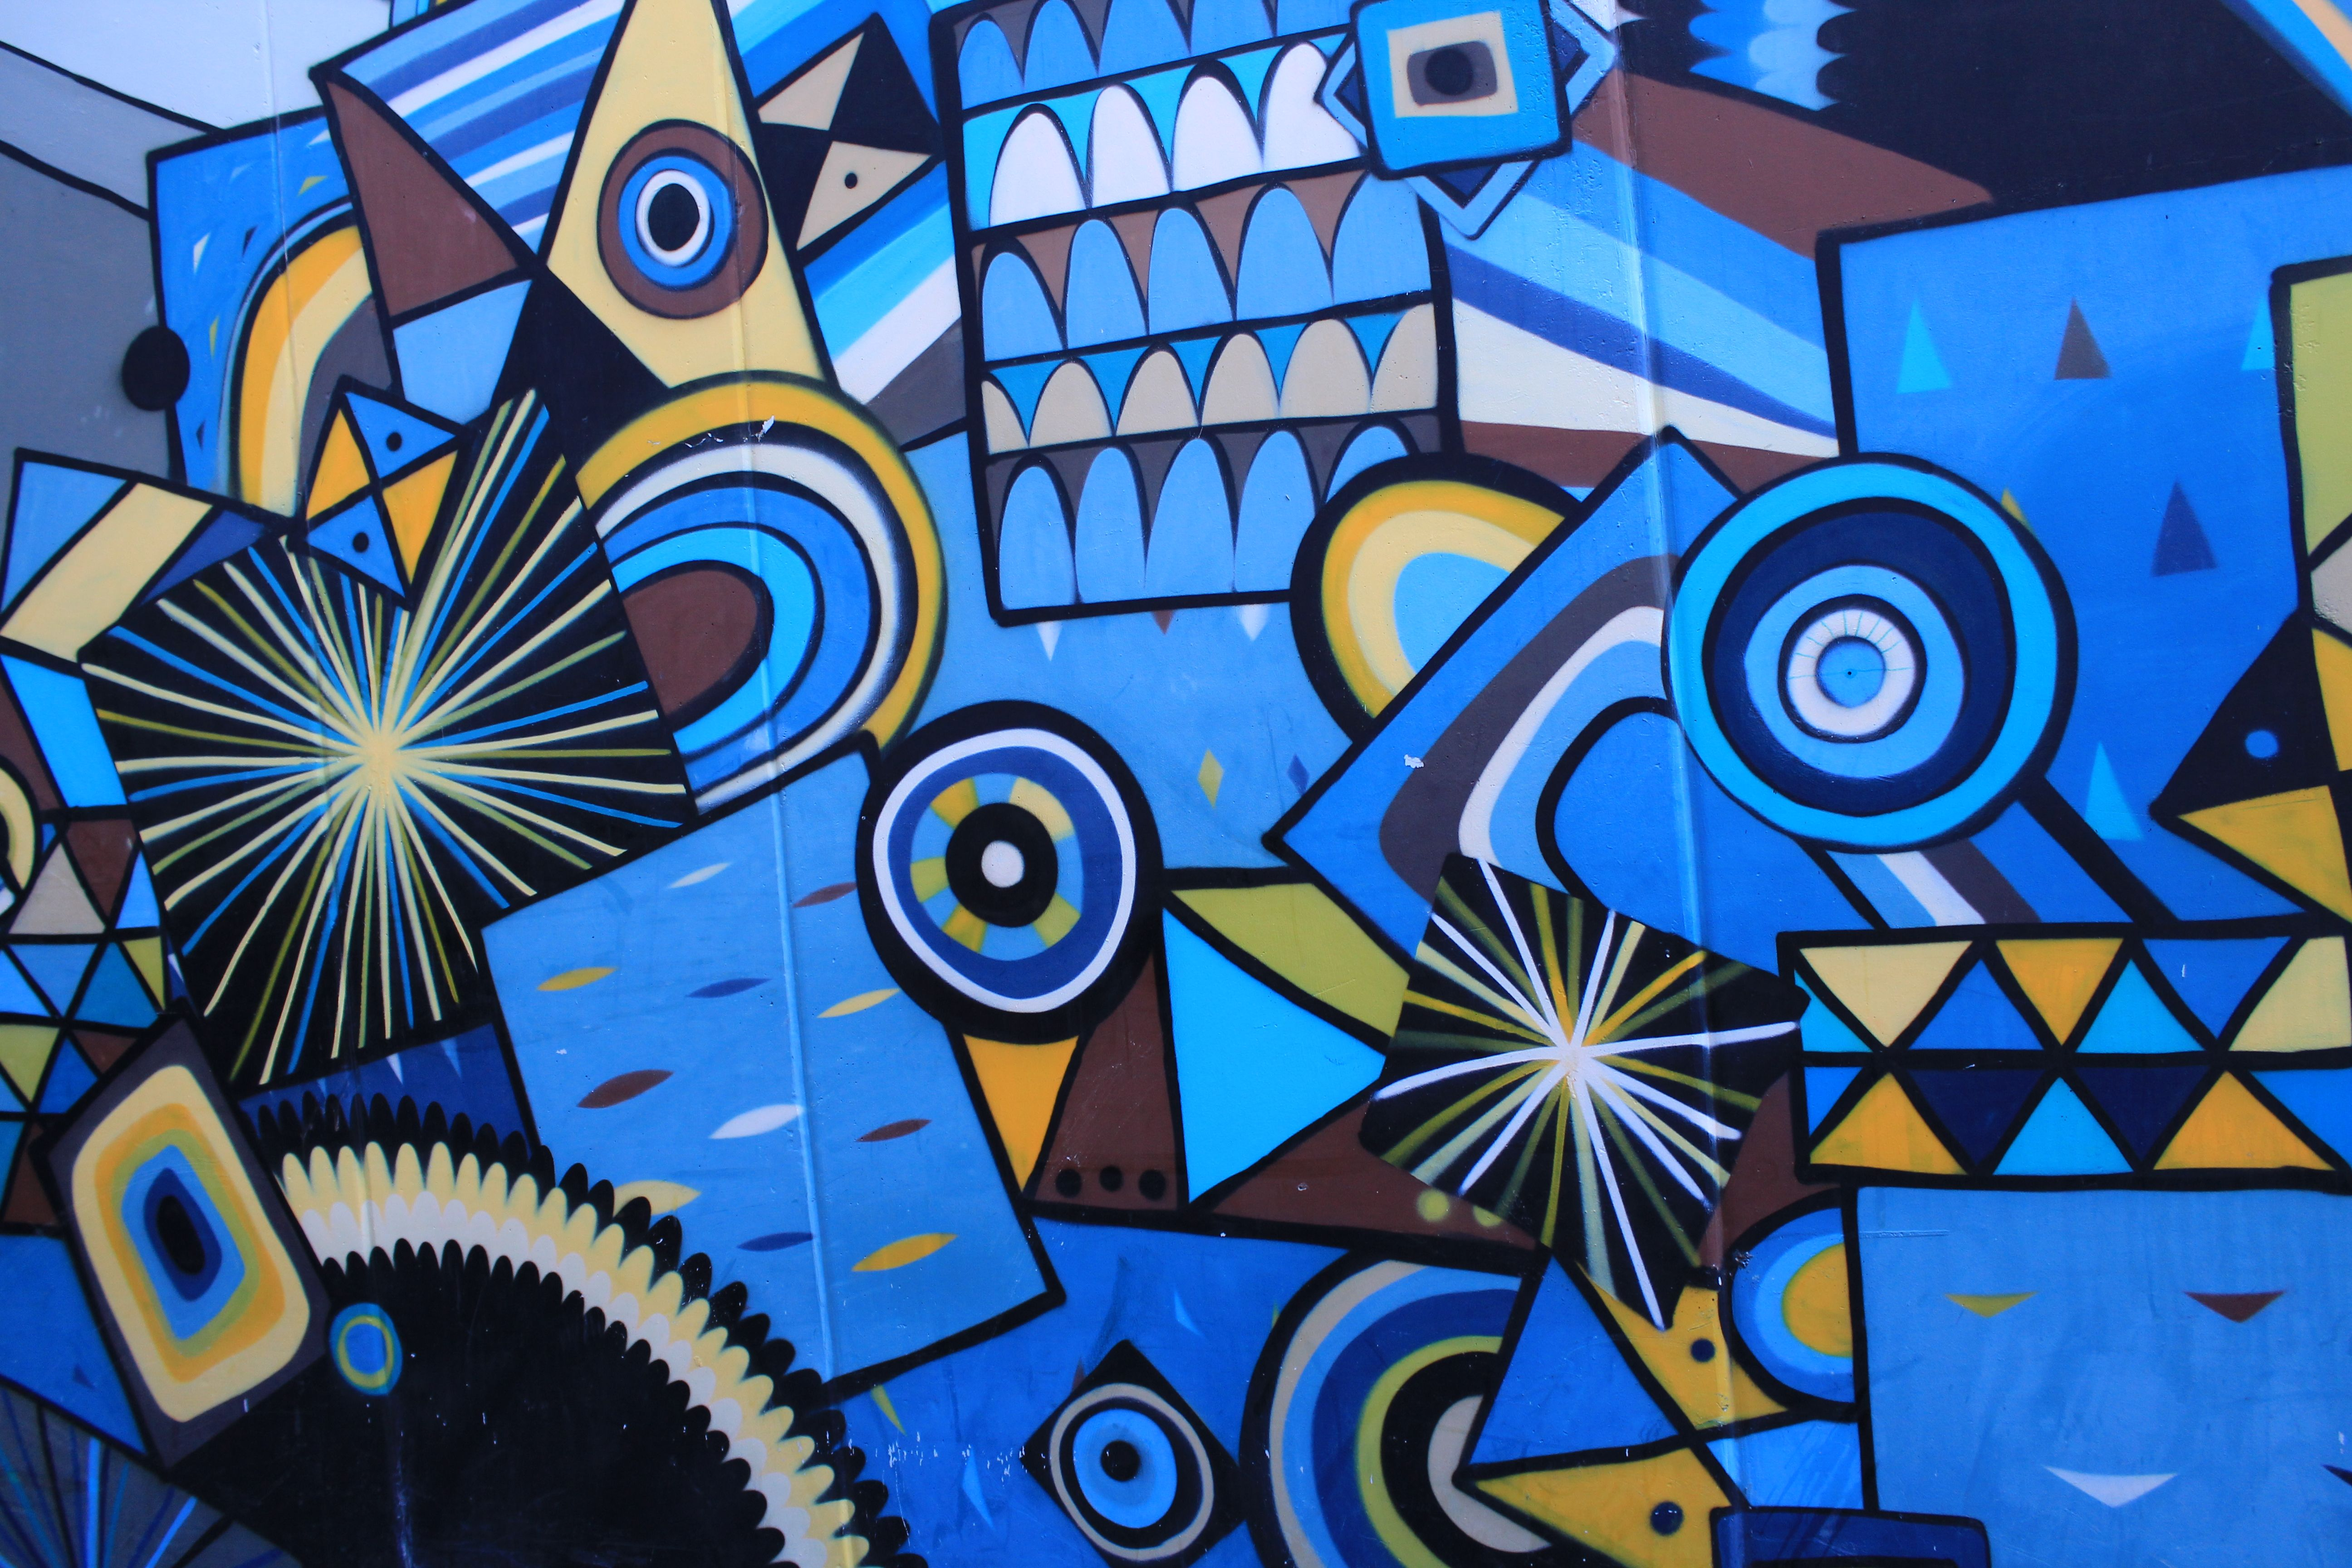 Street art in Perth. | Street art, Art, Abstract artwork